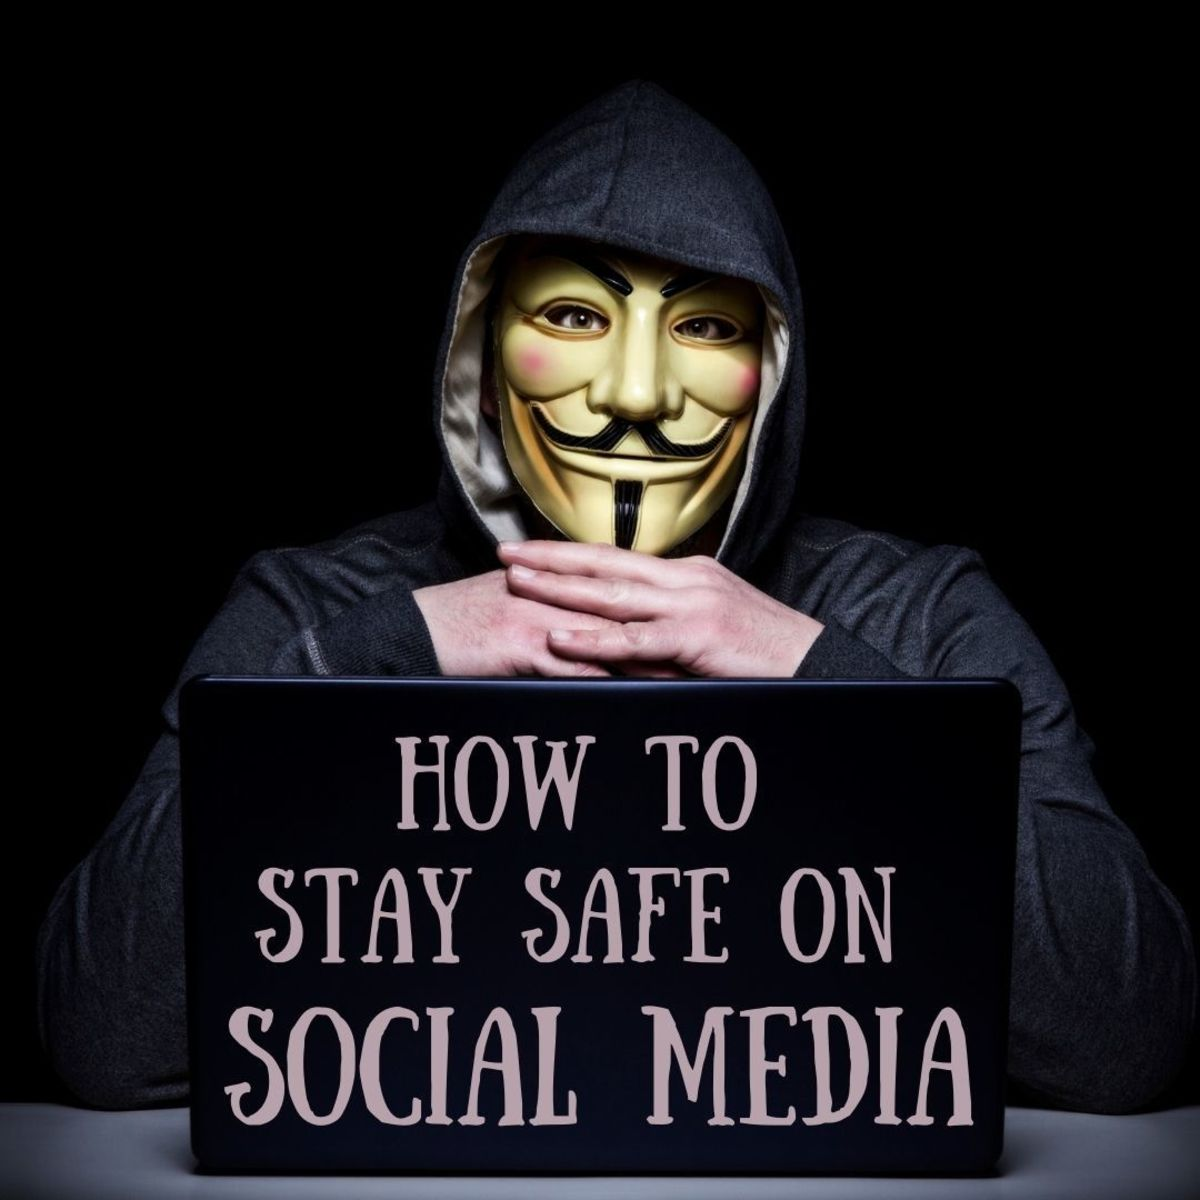 Tips for staying safe on social media sites and apps like Facebook, Instagram, and Twitter